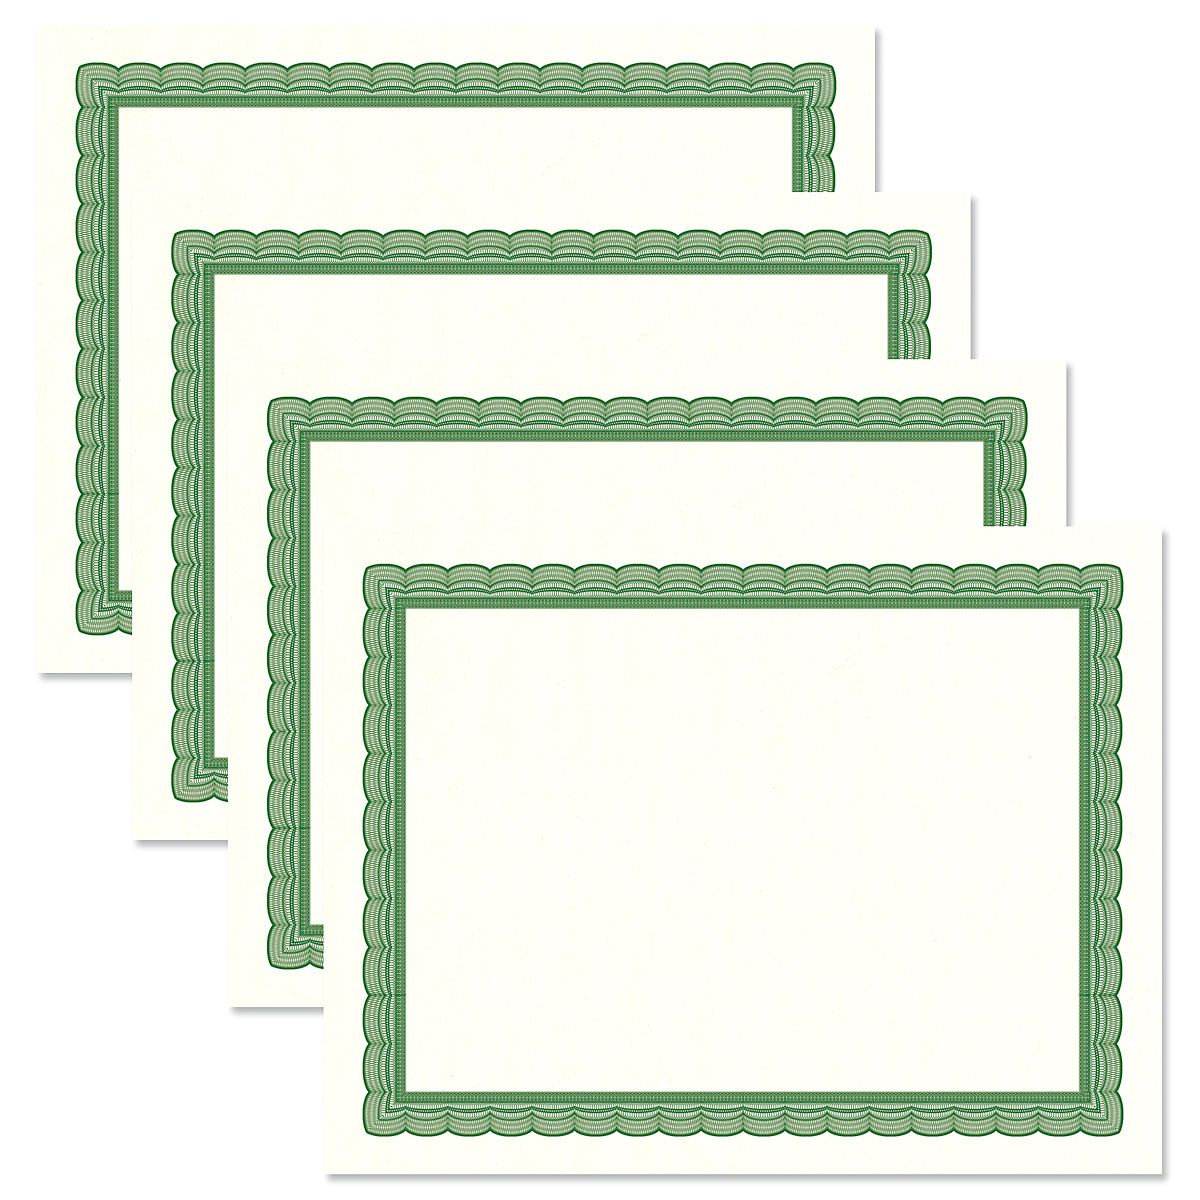 Executive Green Certificate on White Parchment - Set of 25